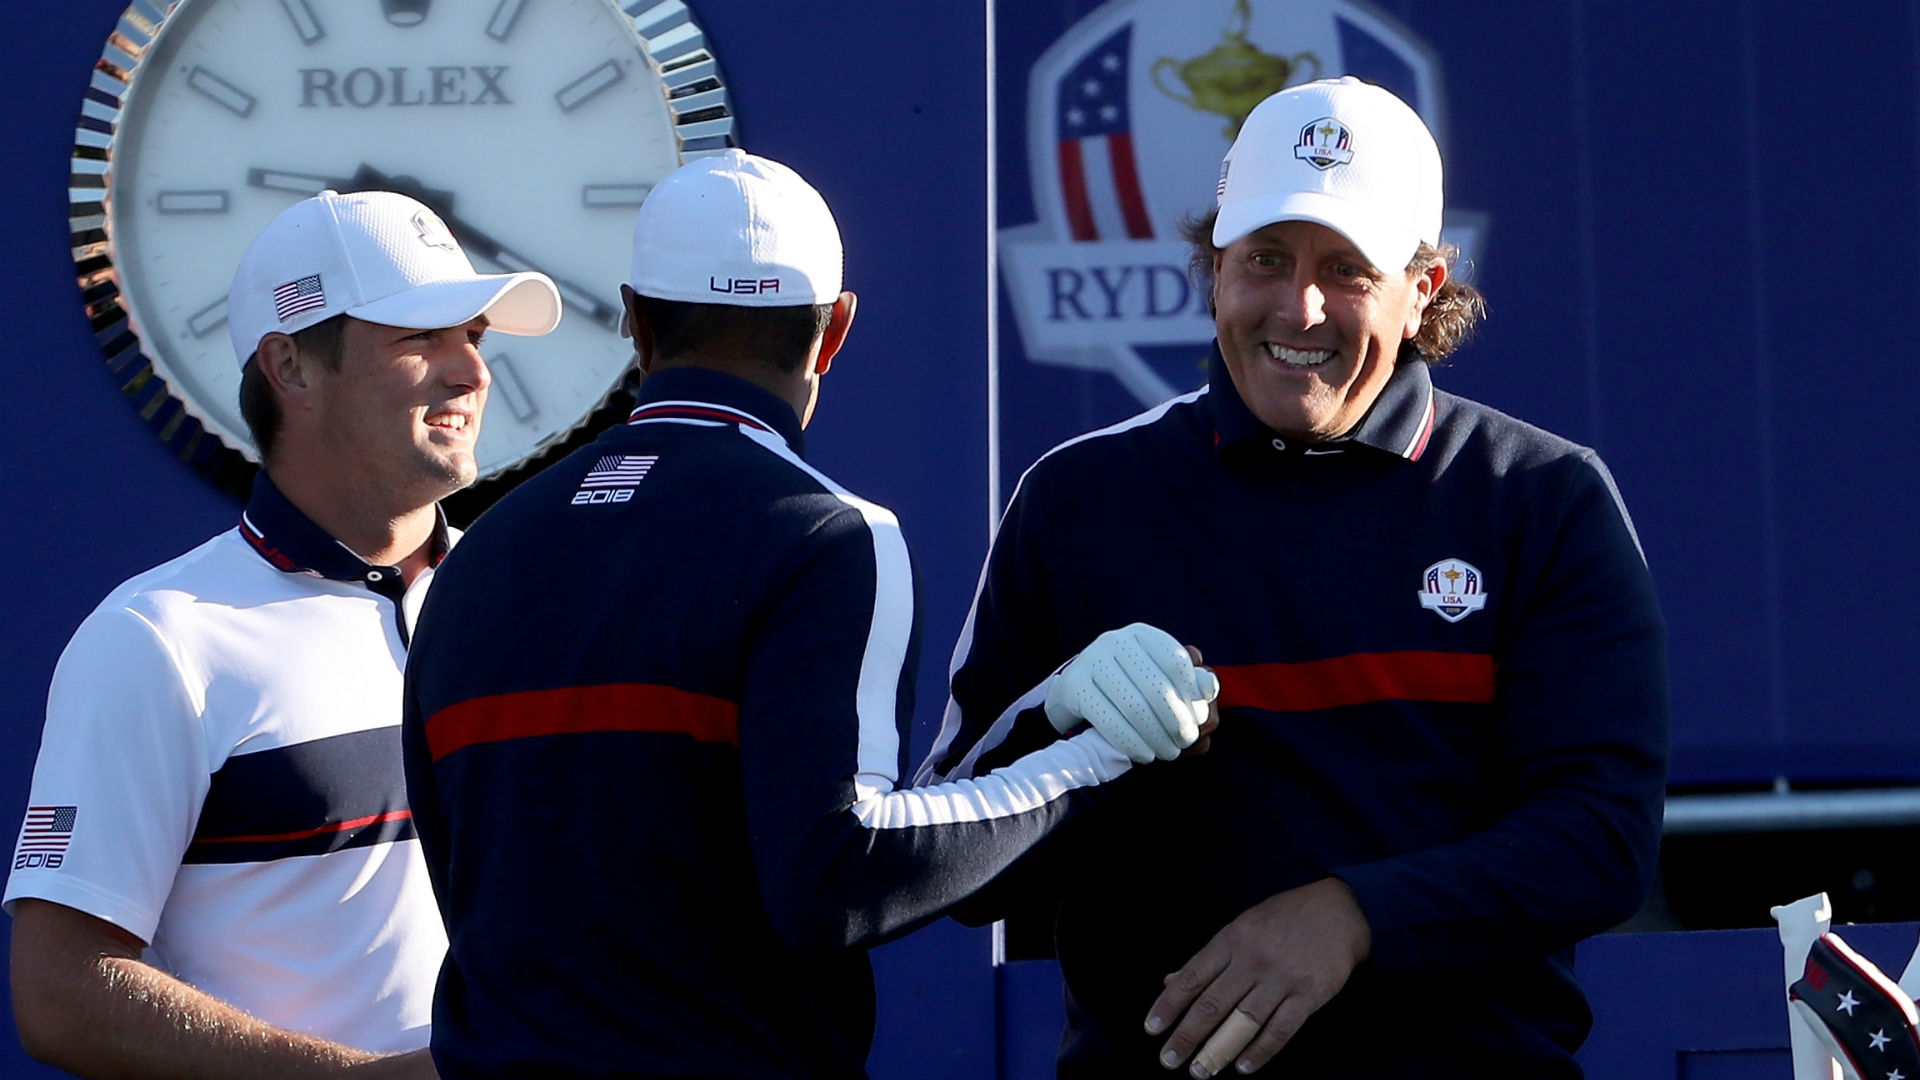 'Captain America' Reed relishes Ryder Cup villain's role